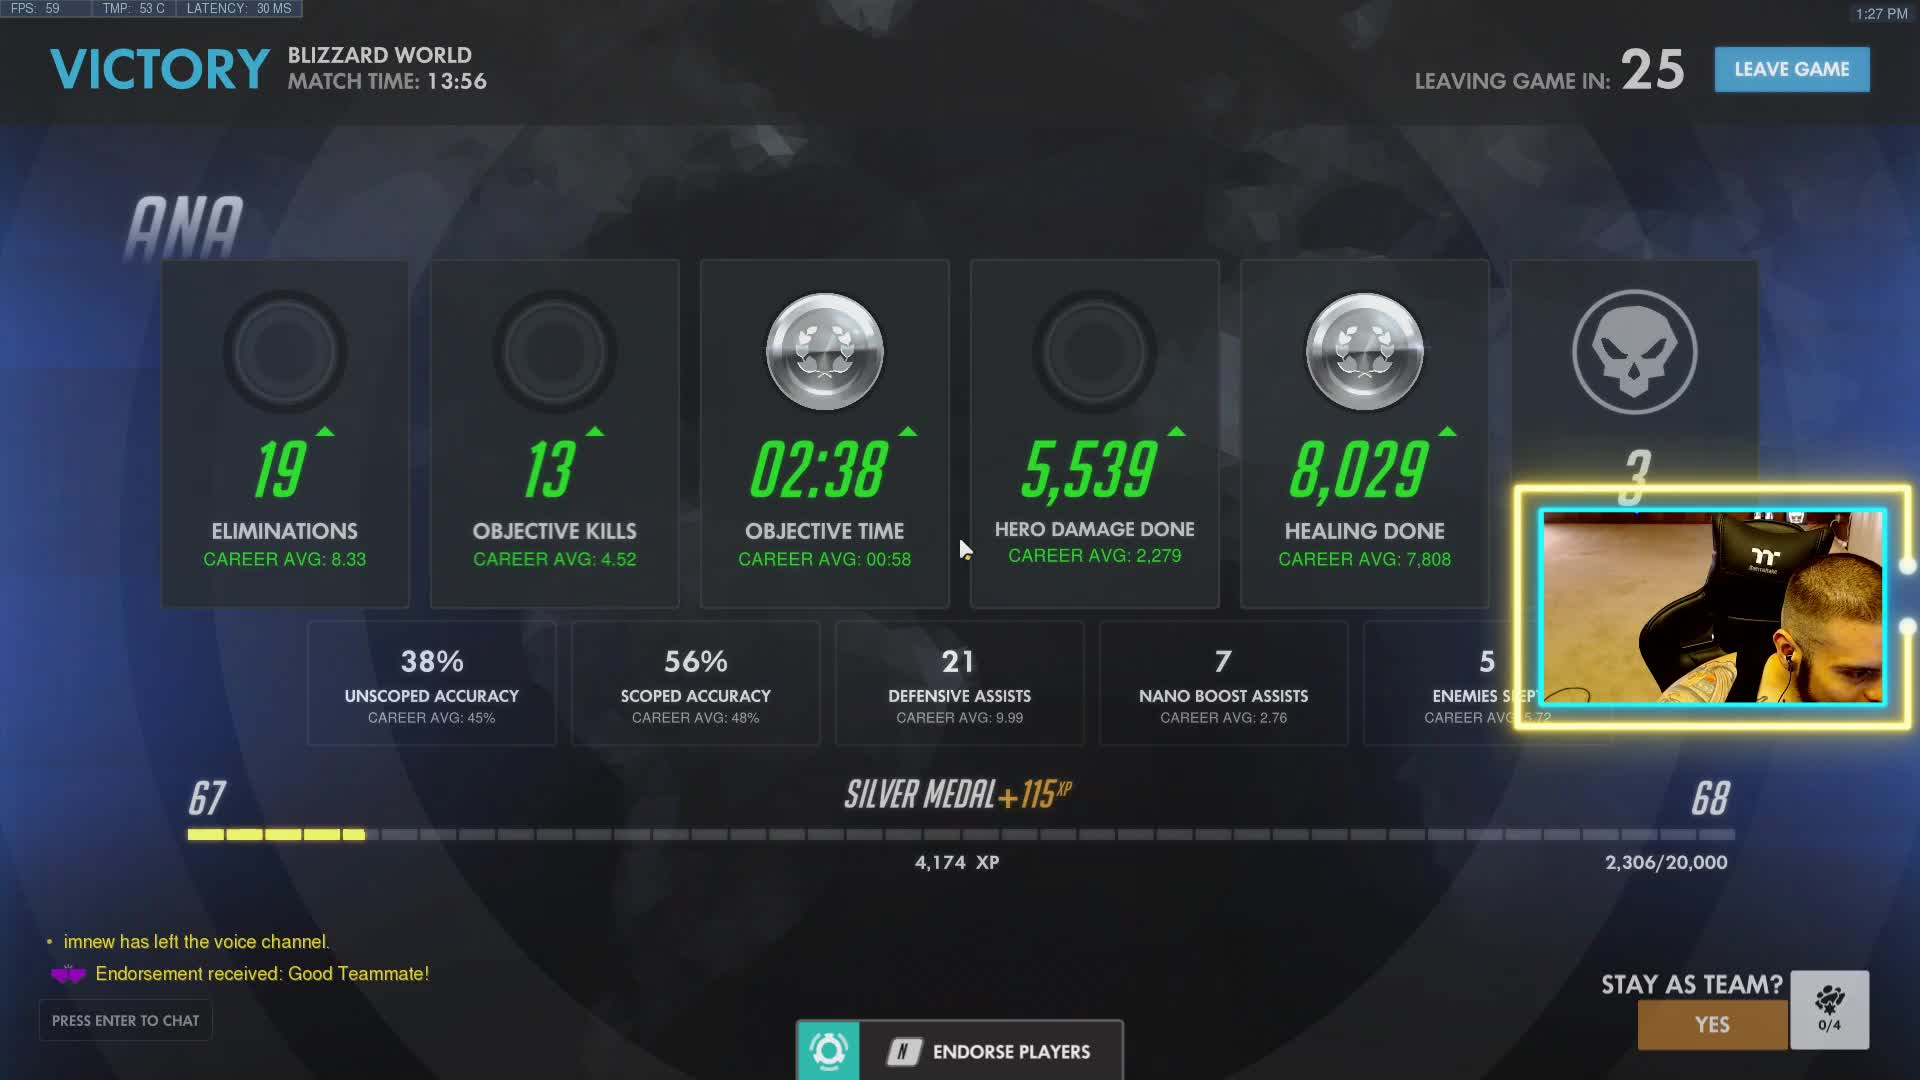 GIF Replay, Moment Caught By wolv3rine88, Overwatch, non-toxic comps GIFs